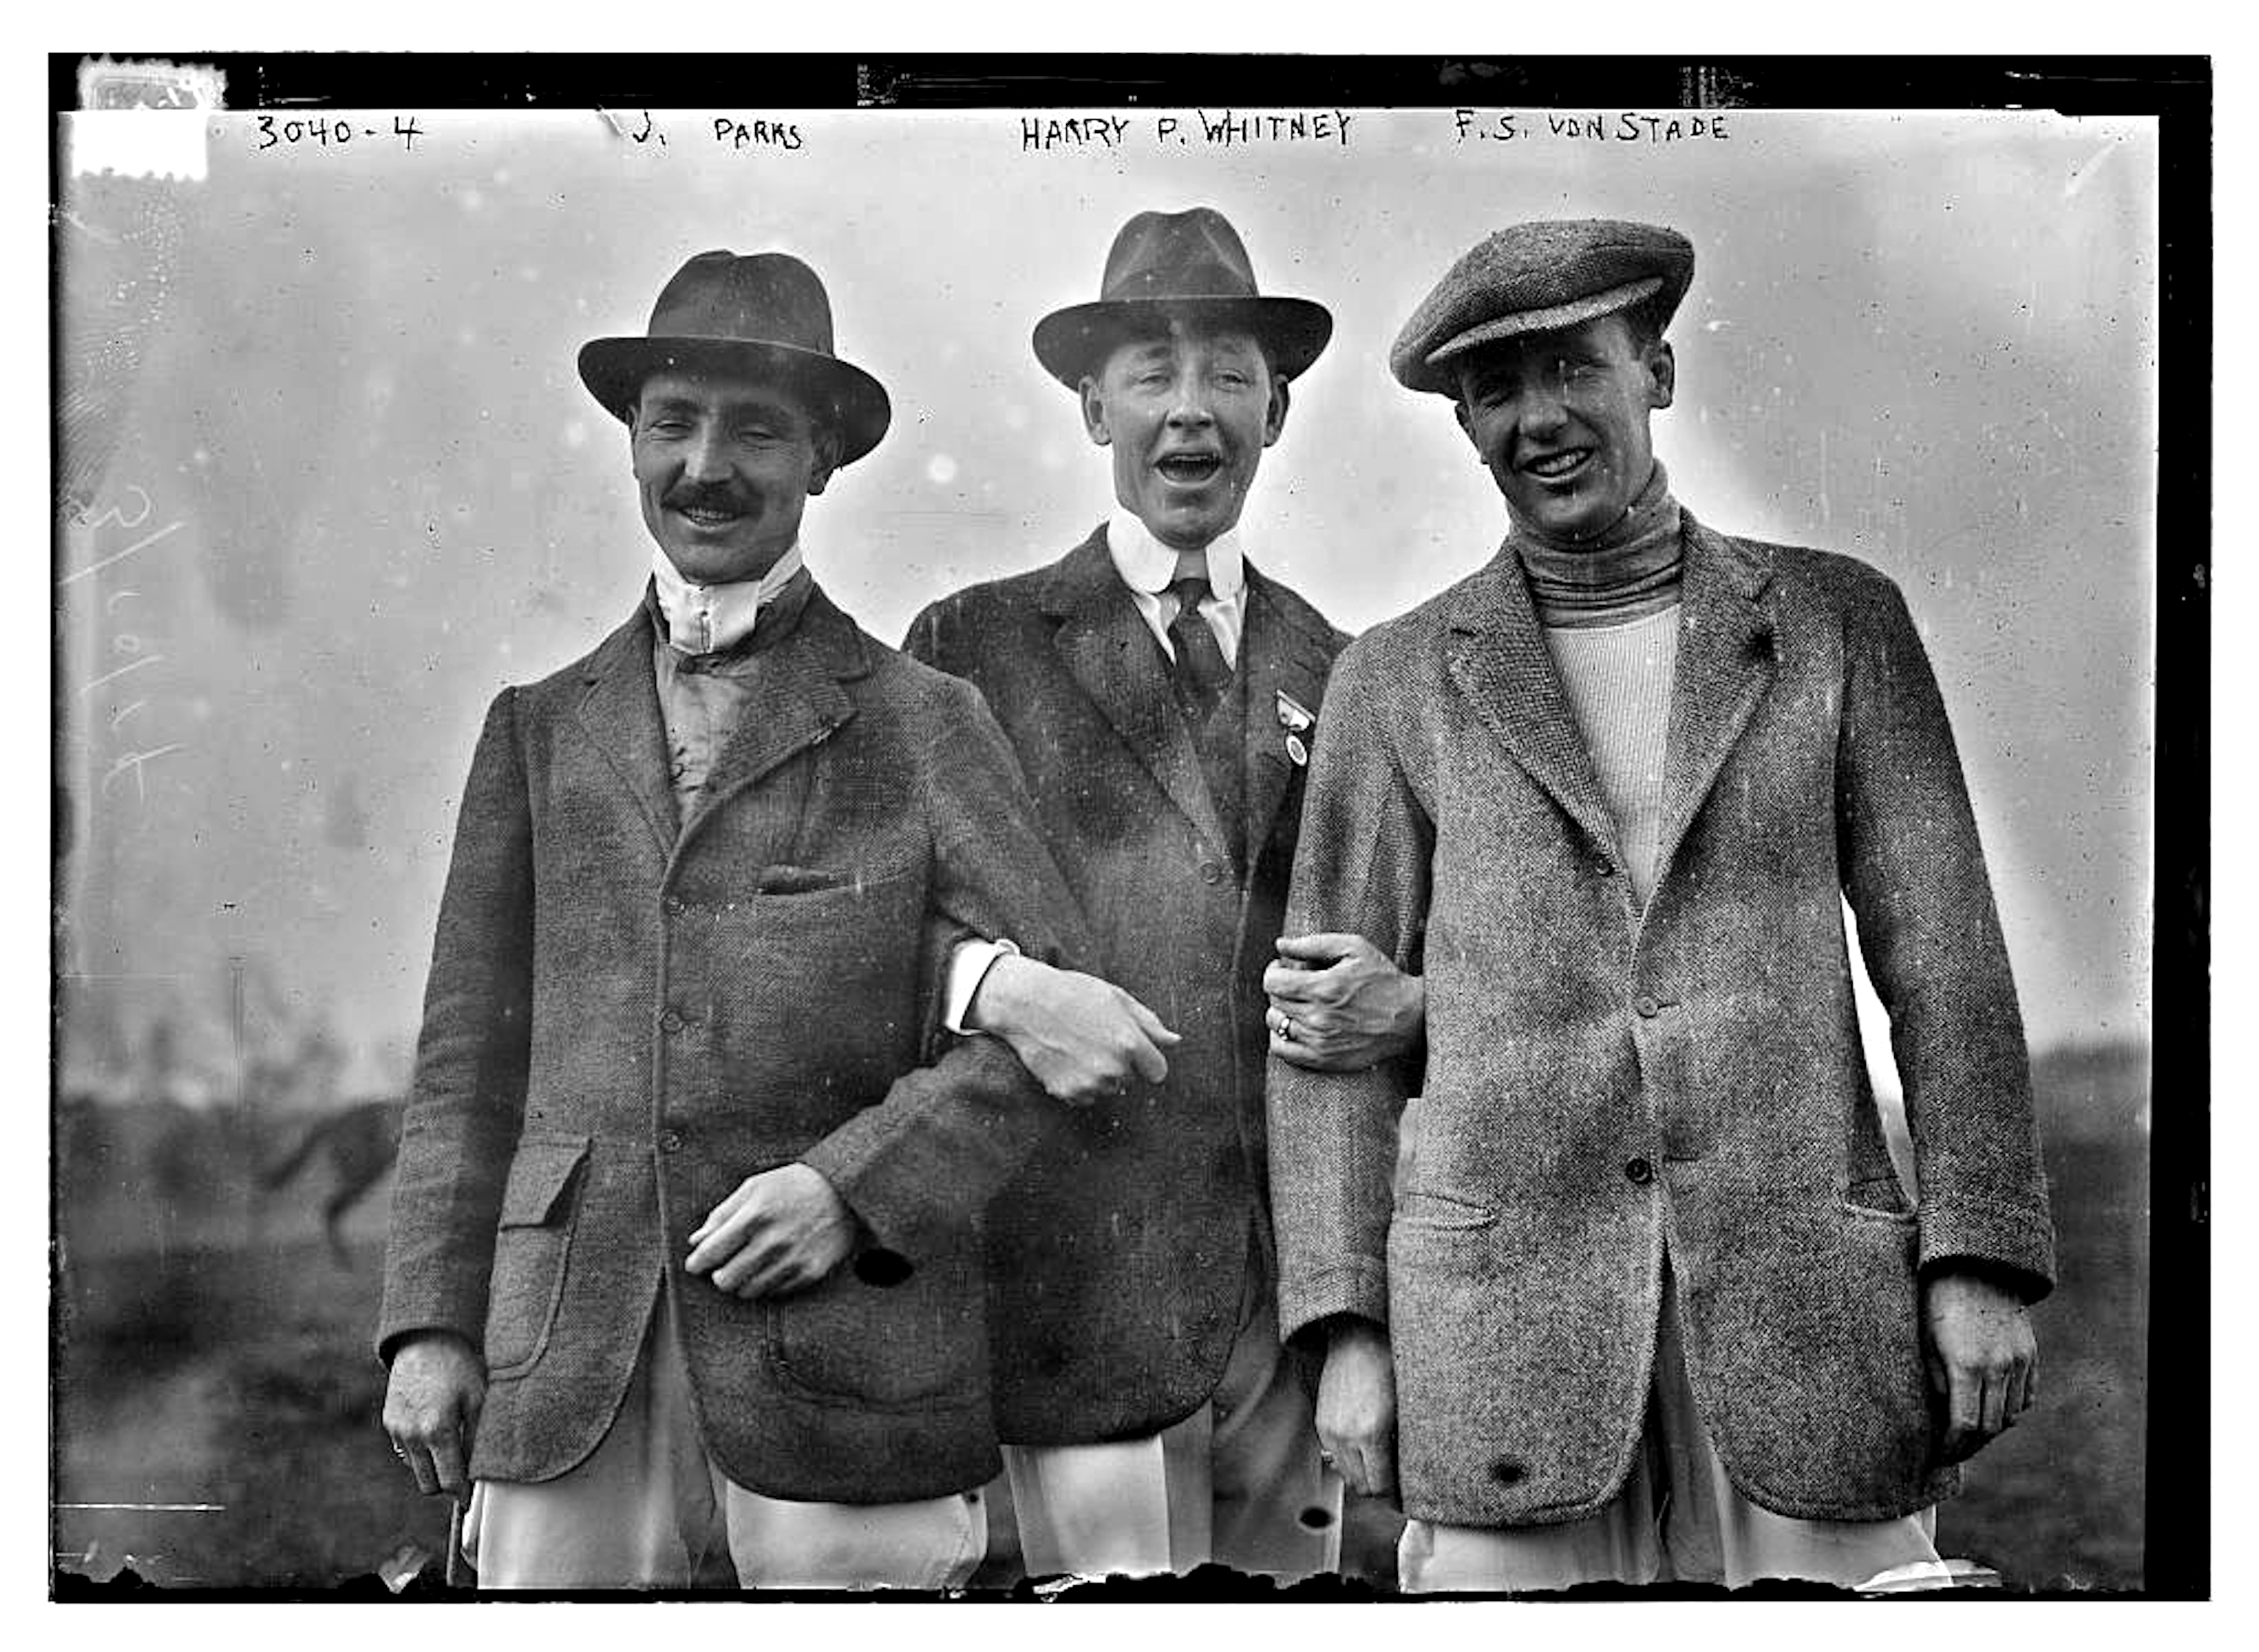 "J. Parks, Harry Payne Whintey, and F. ""Skiddy"" von Stade, c. 1910 (Library of Congress, Prints & Photographs Division, [LC-DIG-ggbain-15888])"